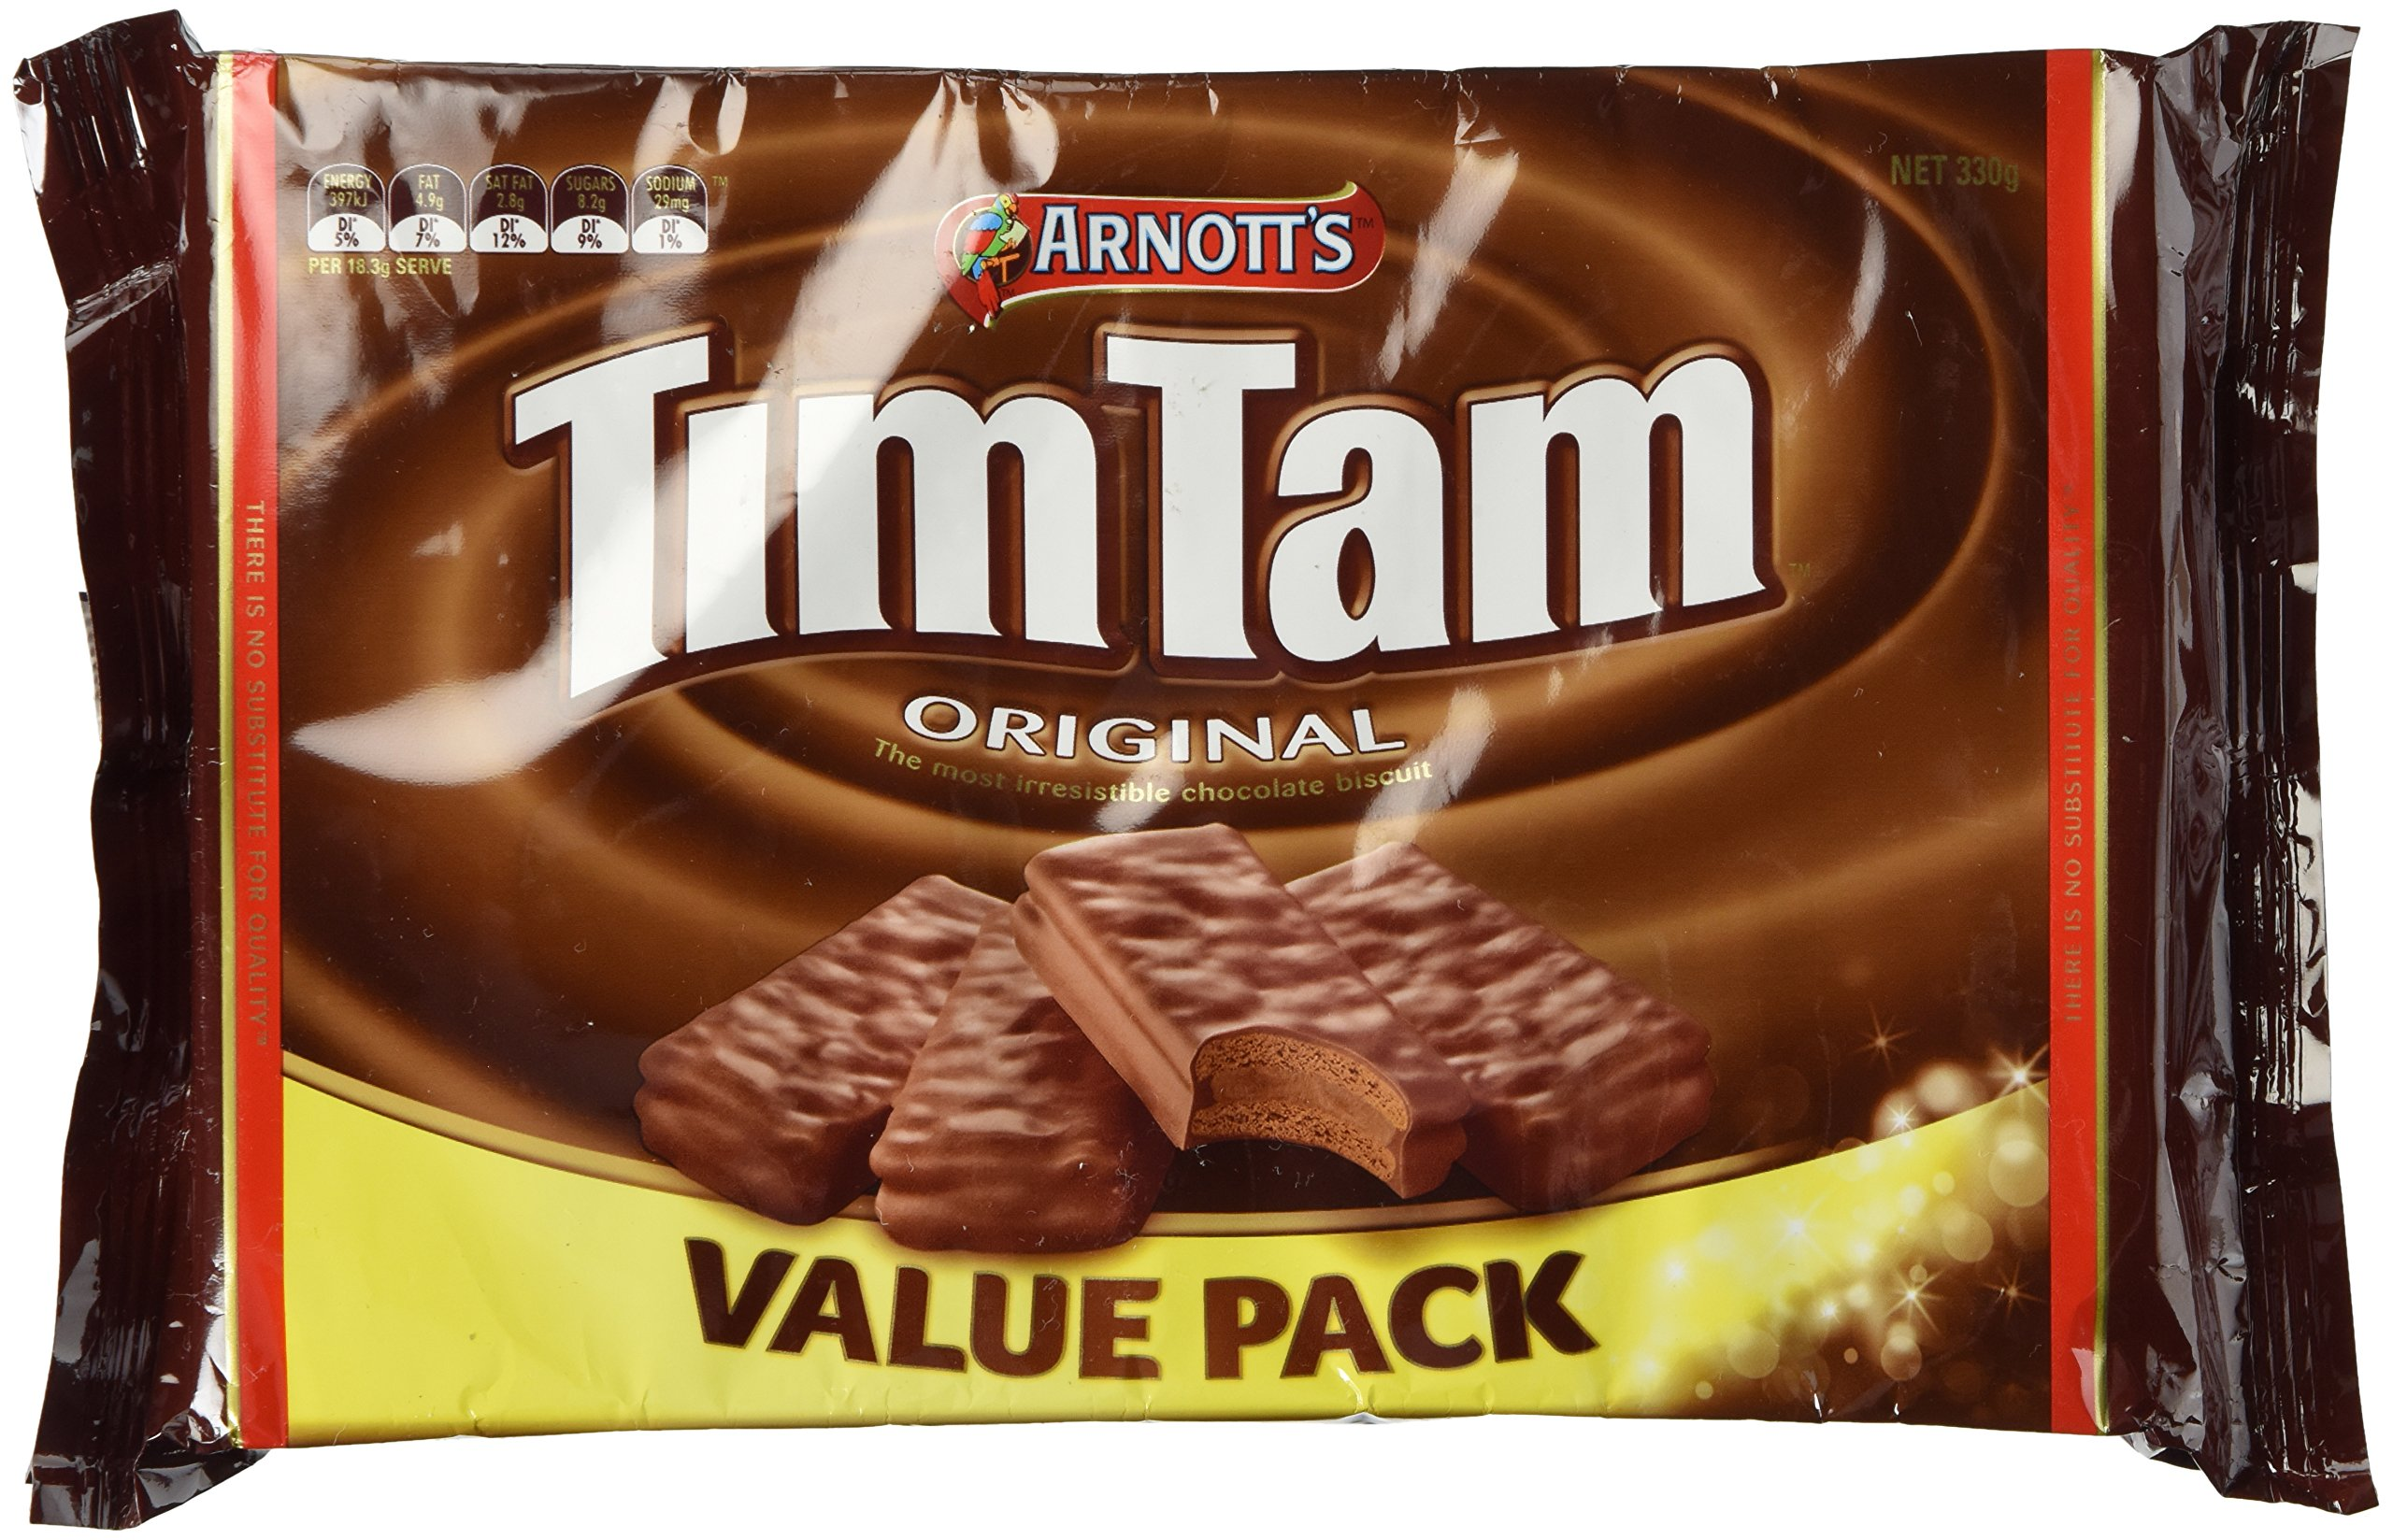 Arnotts Tim Tam Original Value Pack 330g